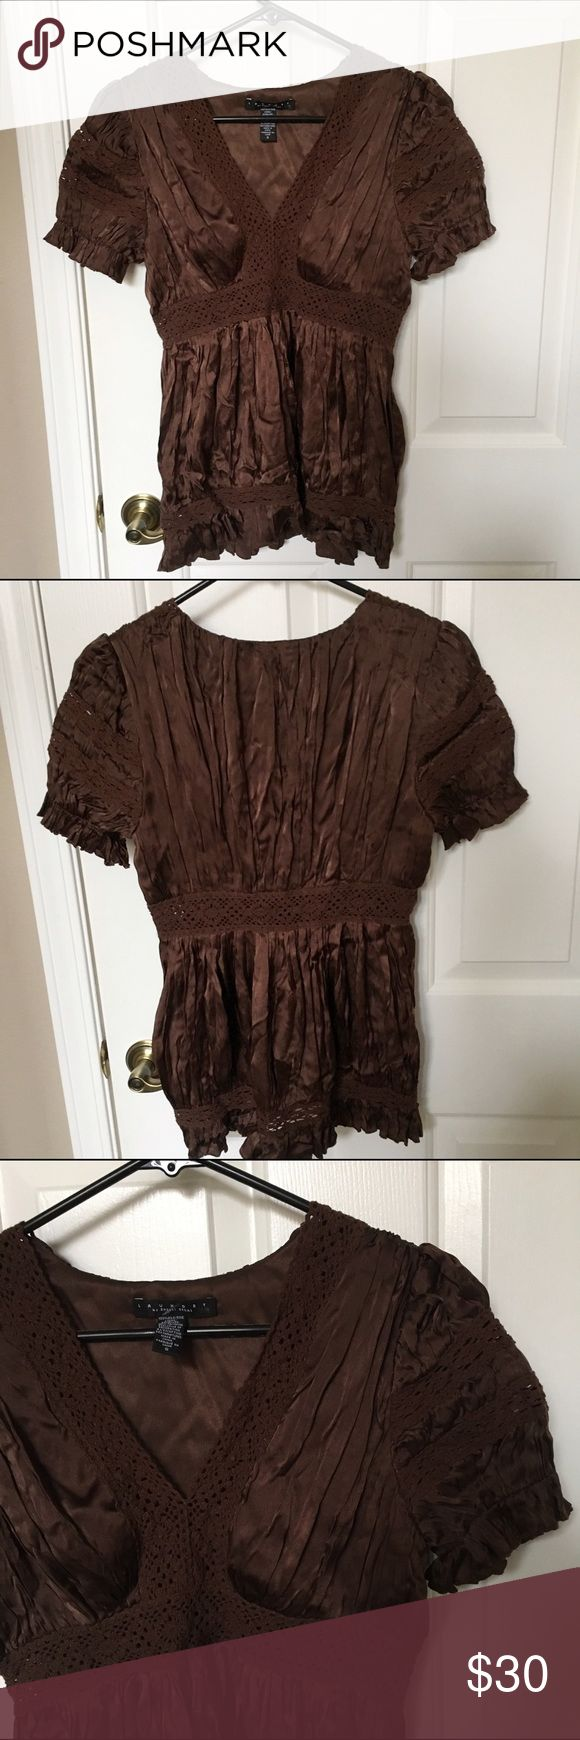 Laundry by shelli segal blouse Laundry by shelli segal. Never worn. Laundry by Shelli Segal Tops Blouses